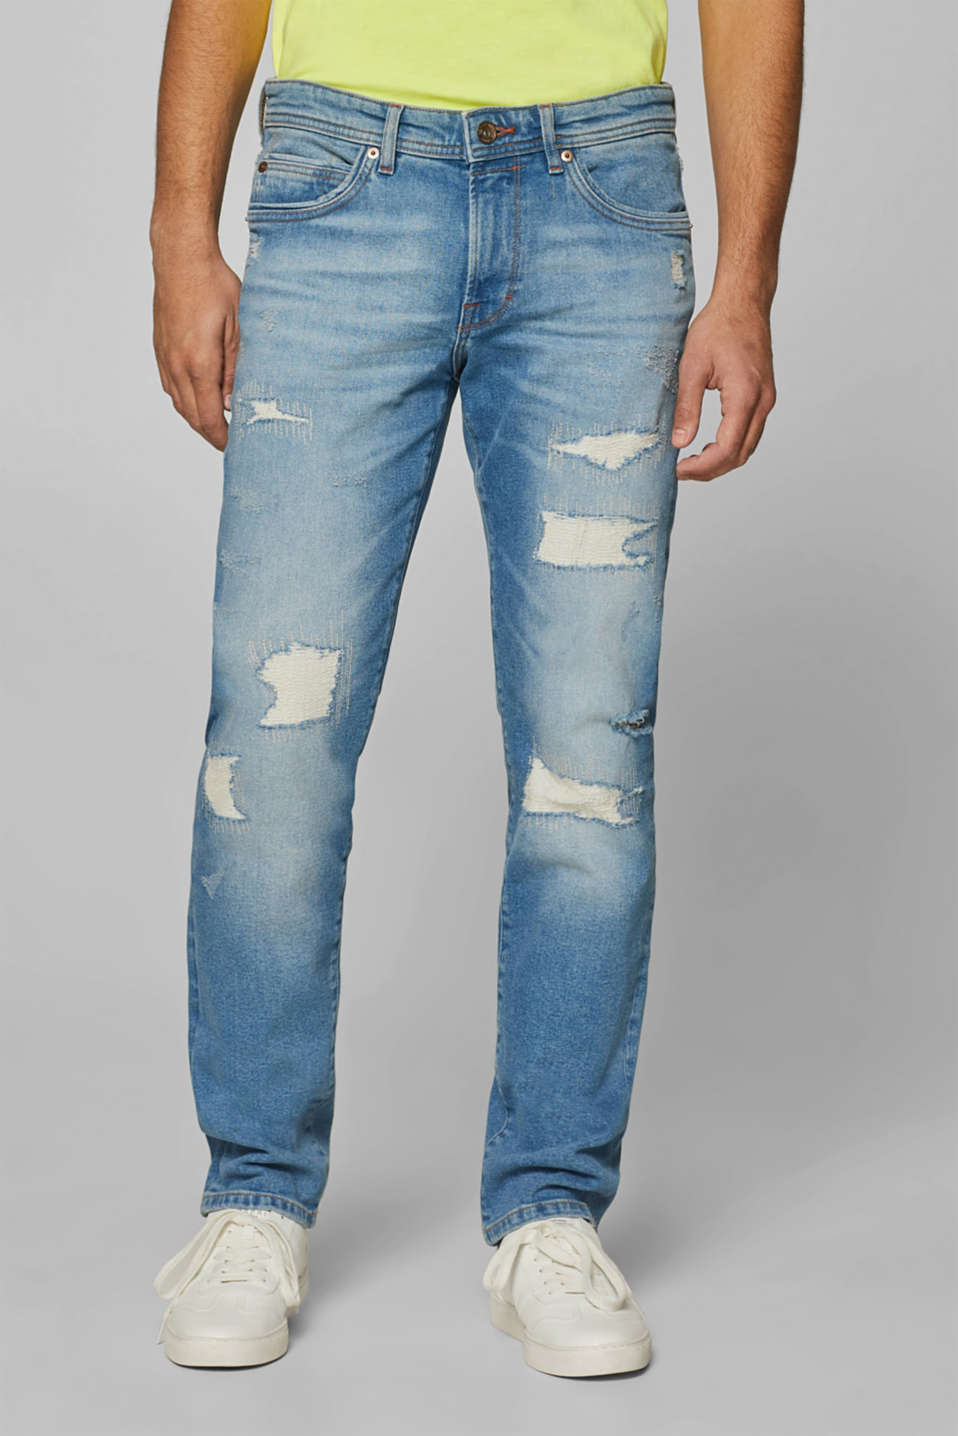 Esprit - Distressed stretch jeans